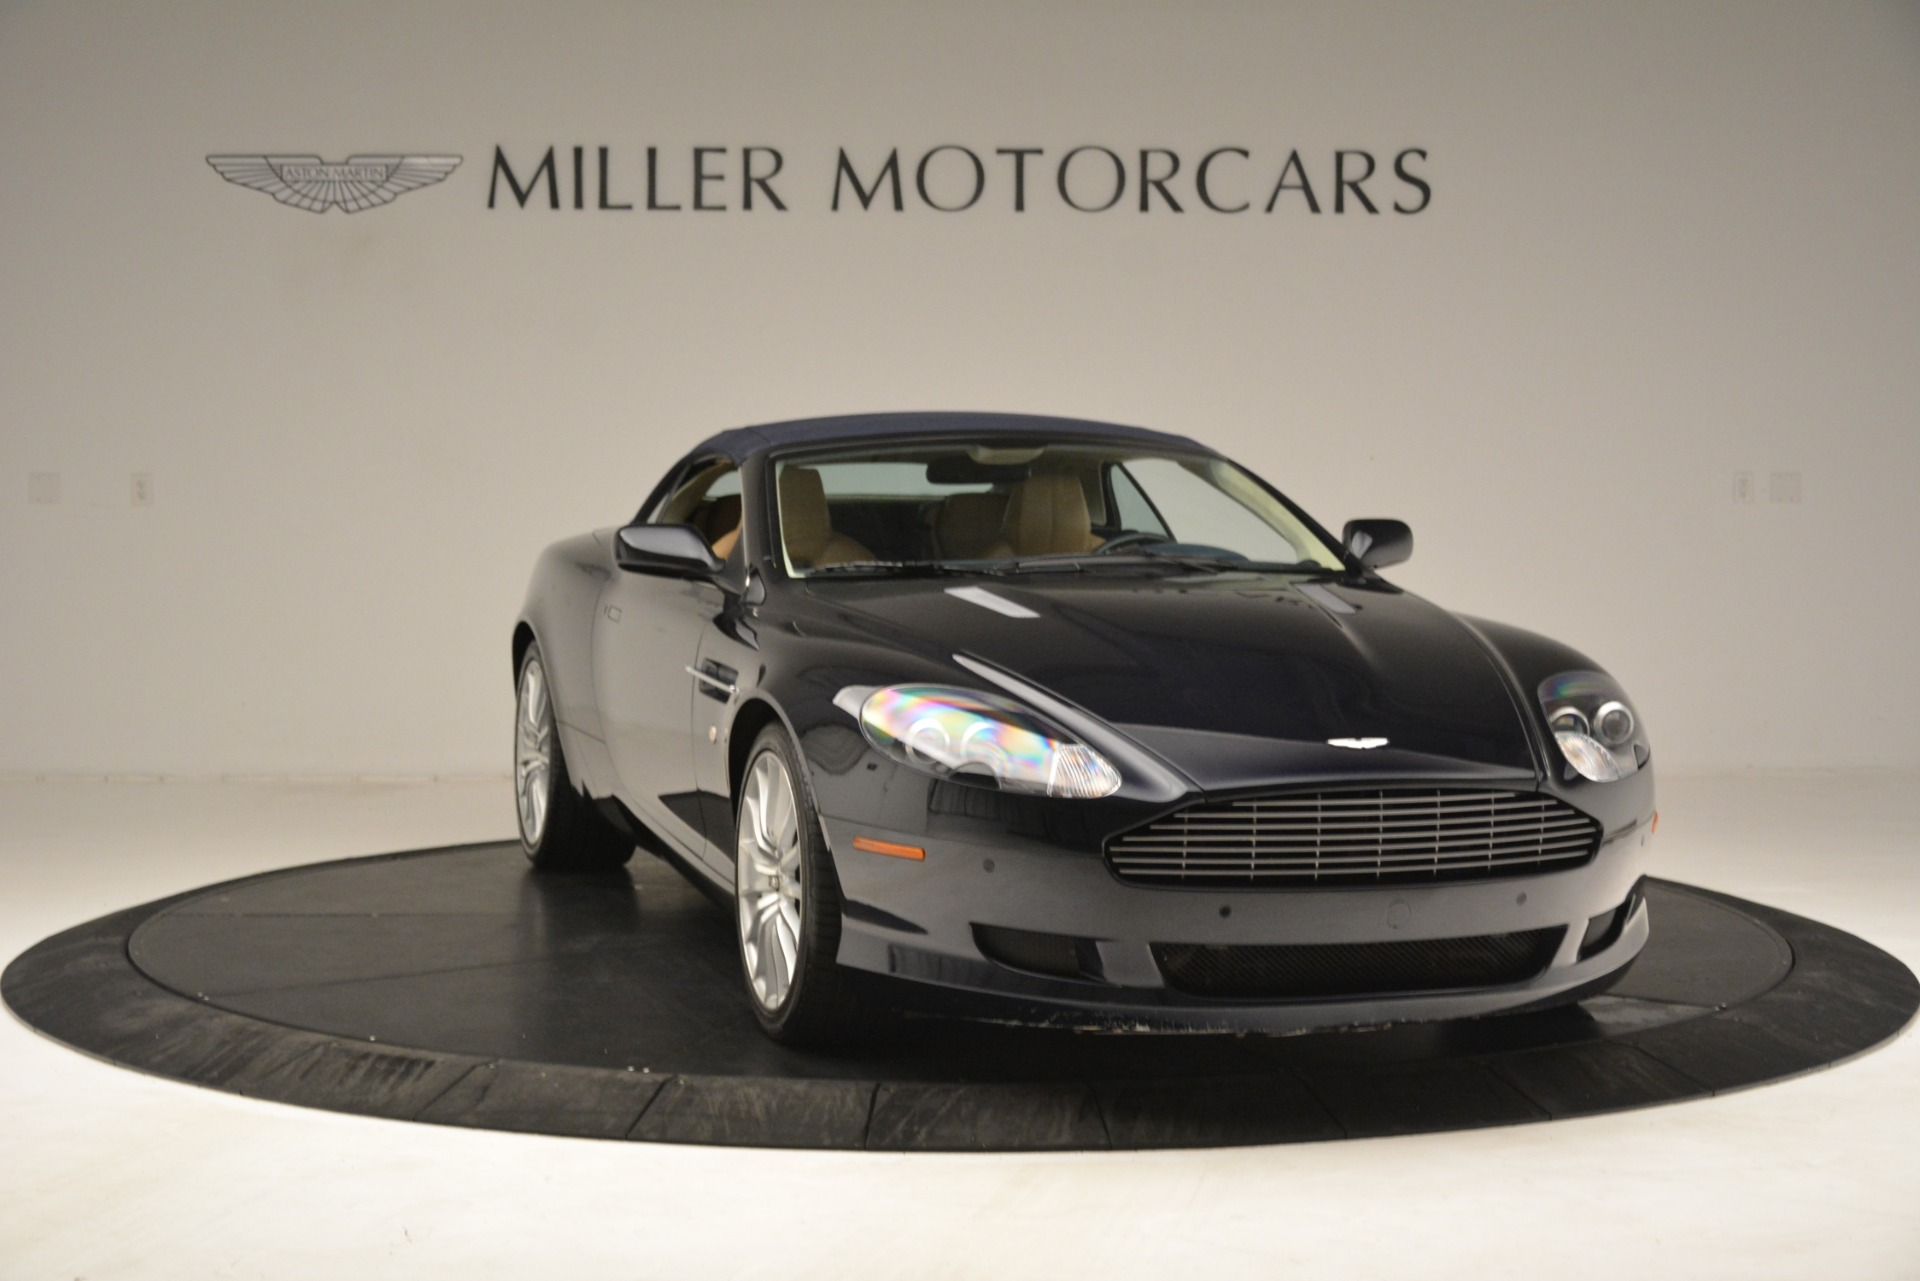 Used 2007 Aston Martin DB9 Convertible For Sale In Westport, CT 3291_p32